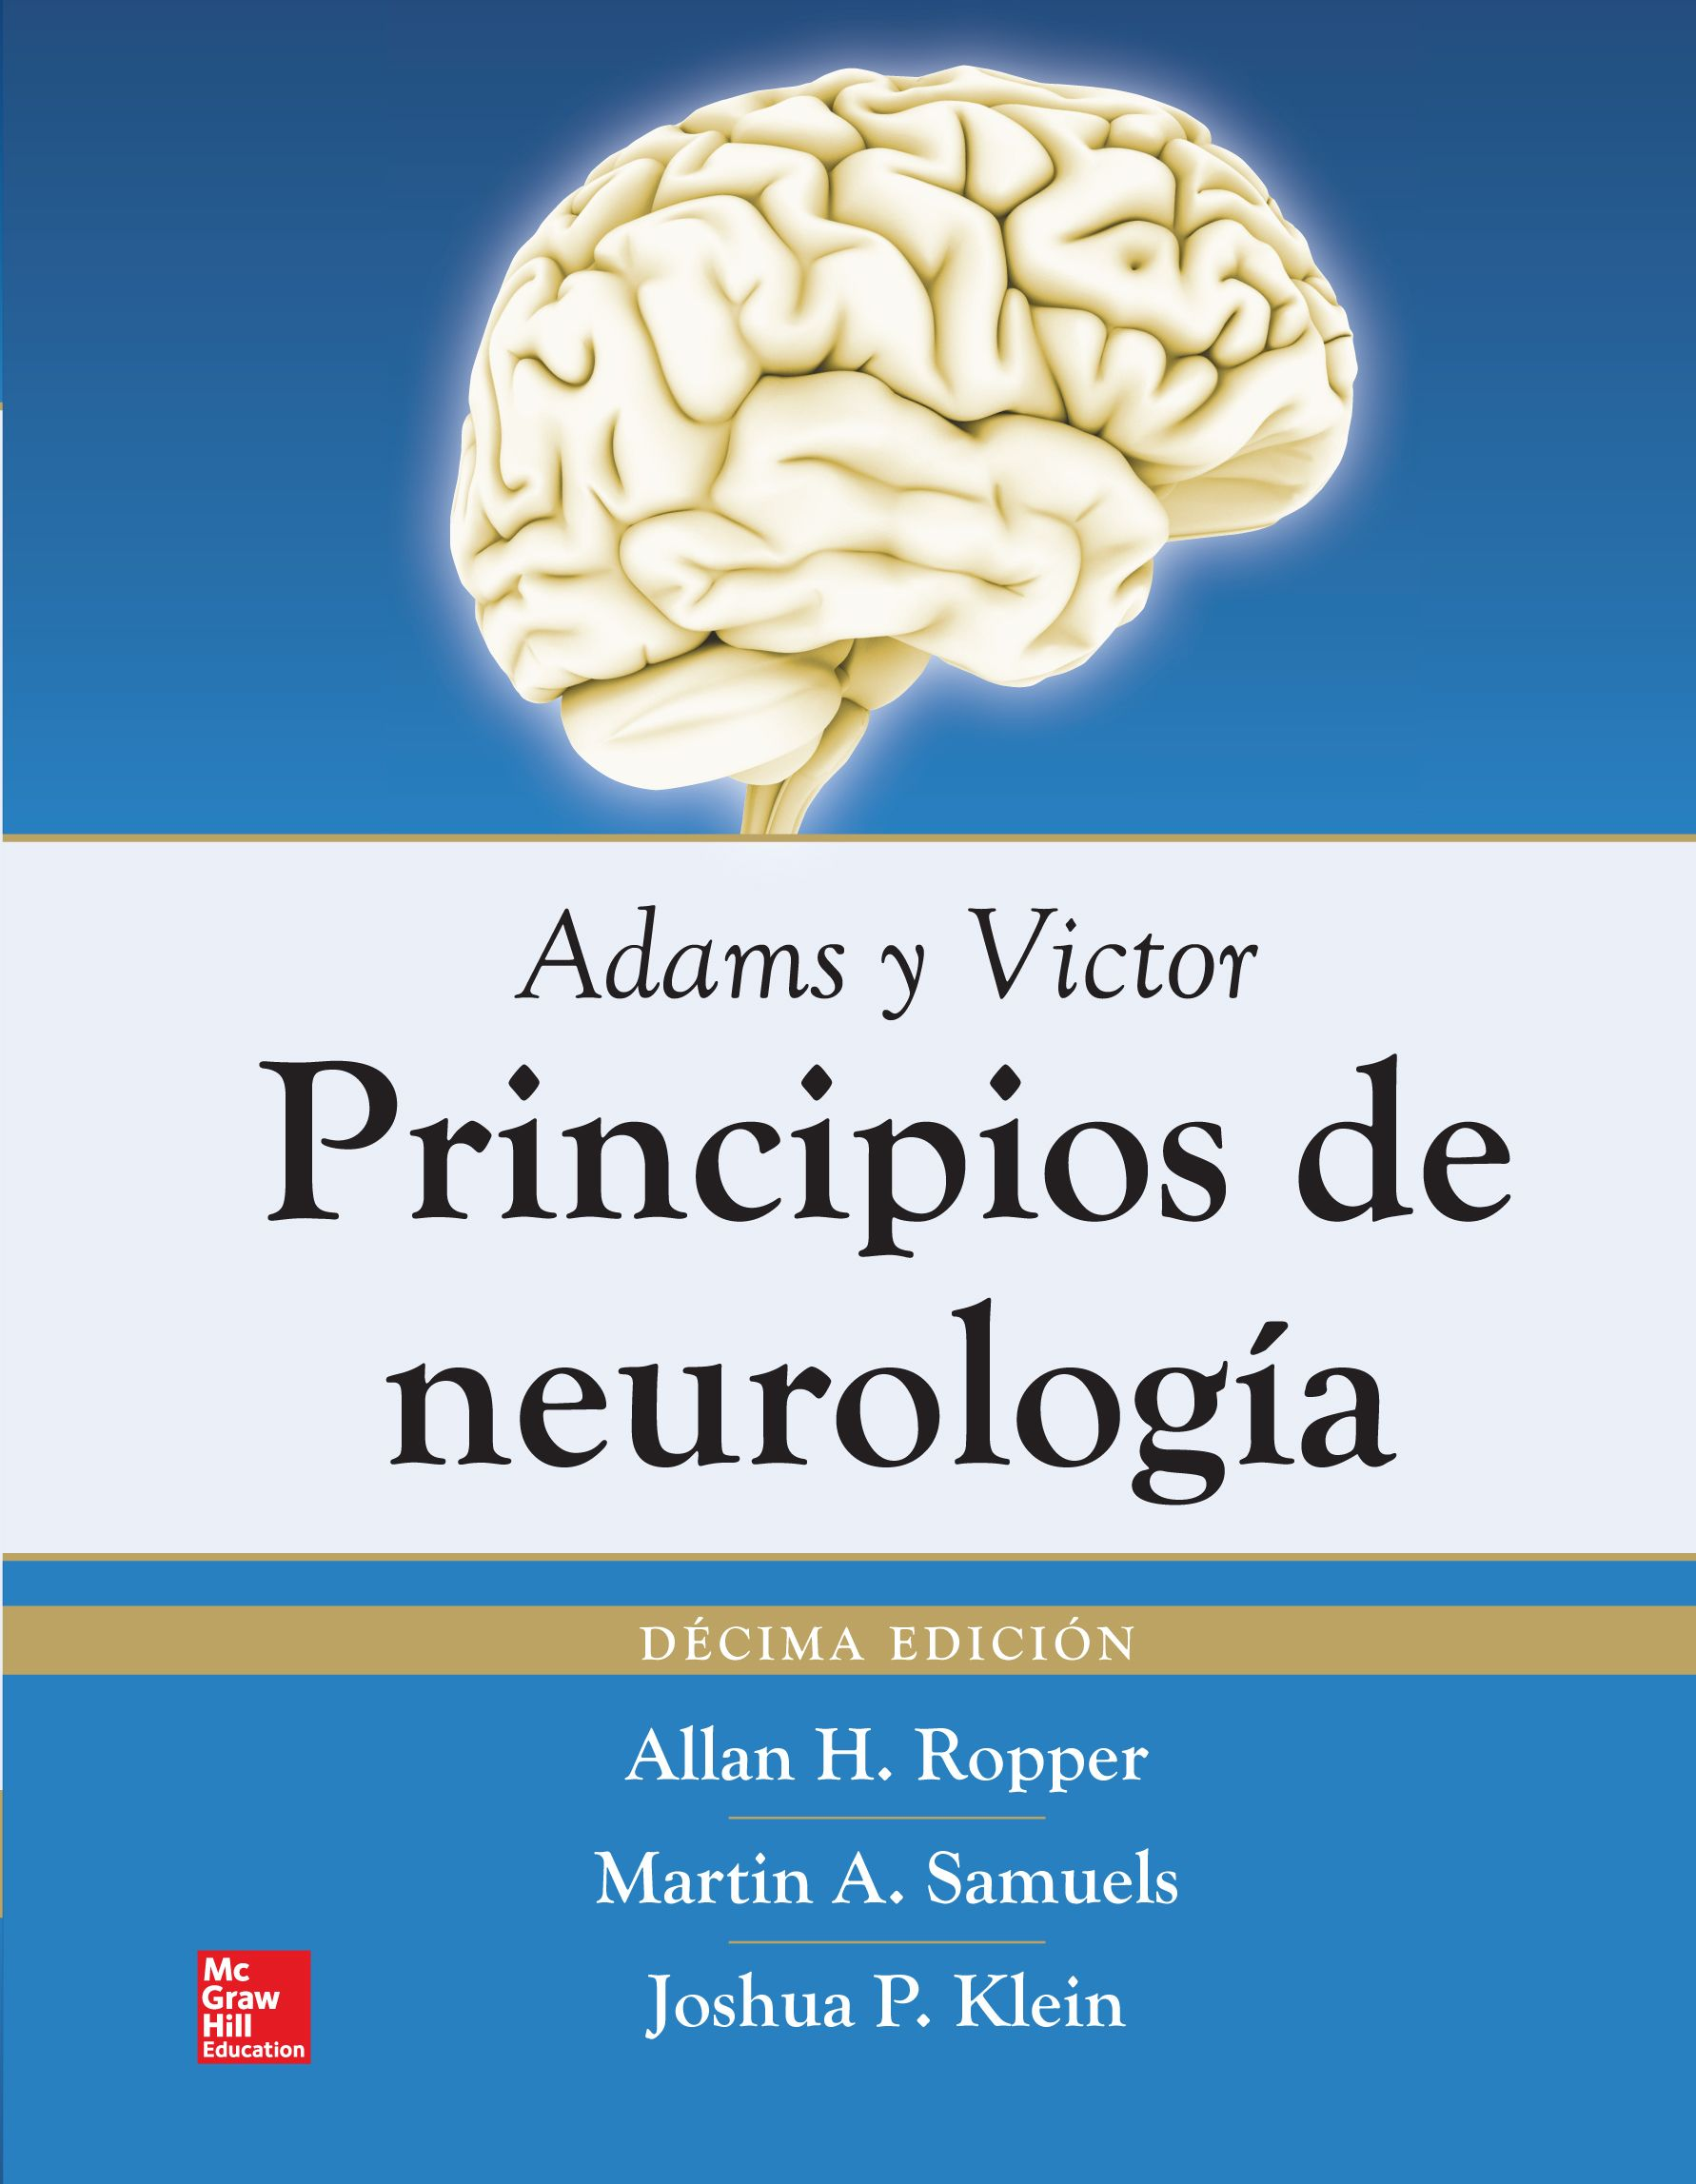 Pin by Reina on Ciencia | Pinterest | Medical and Textbook